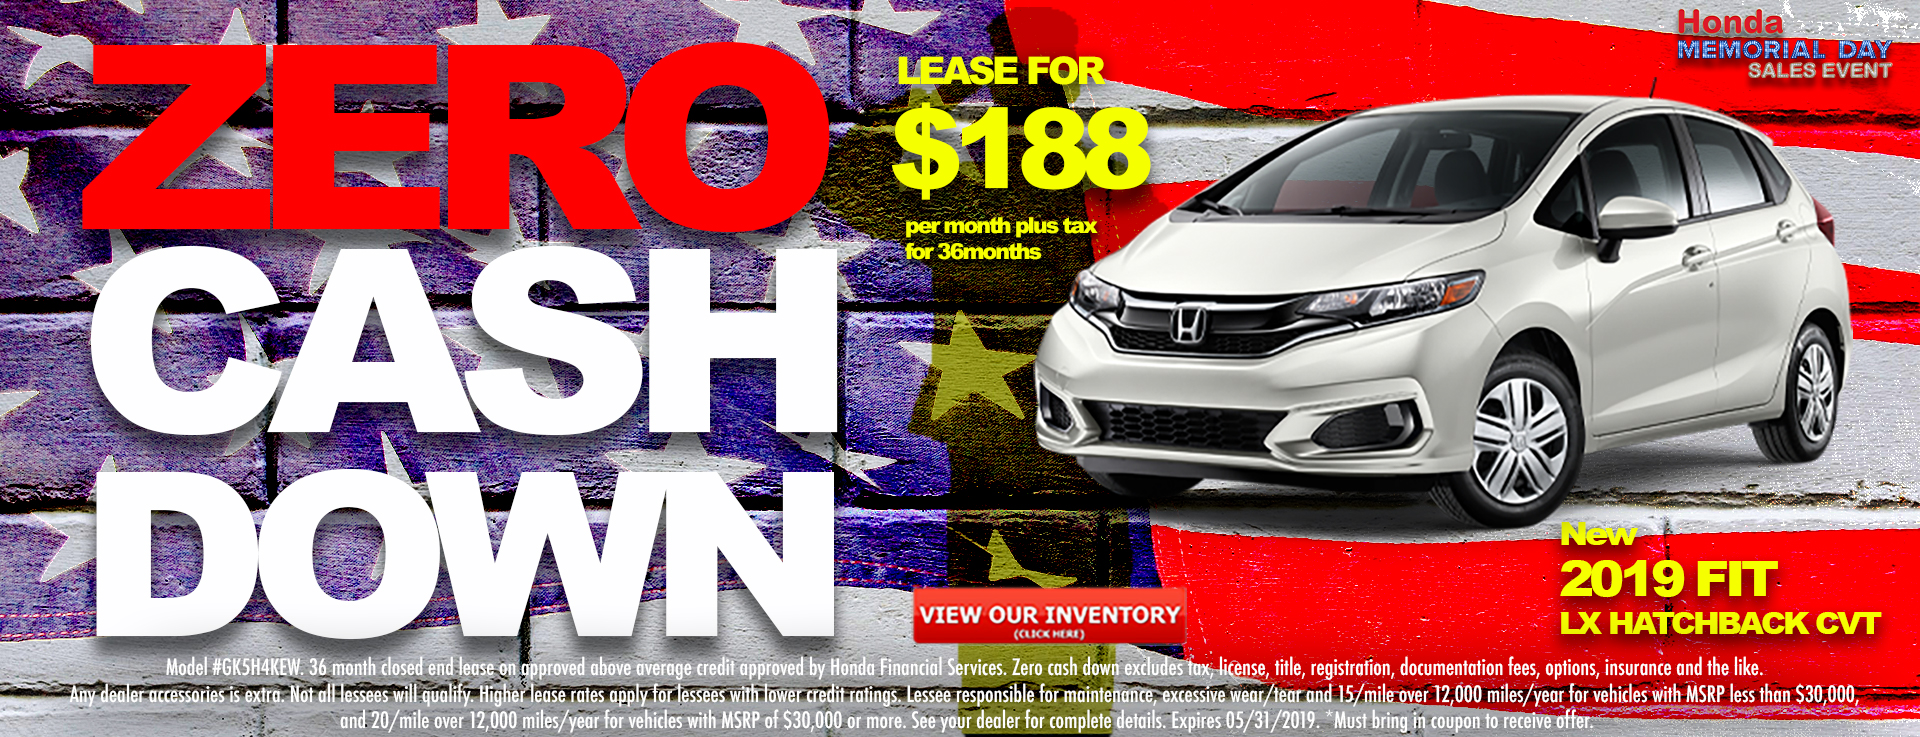 Honda Fit $188 Lease